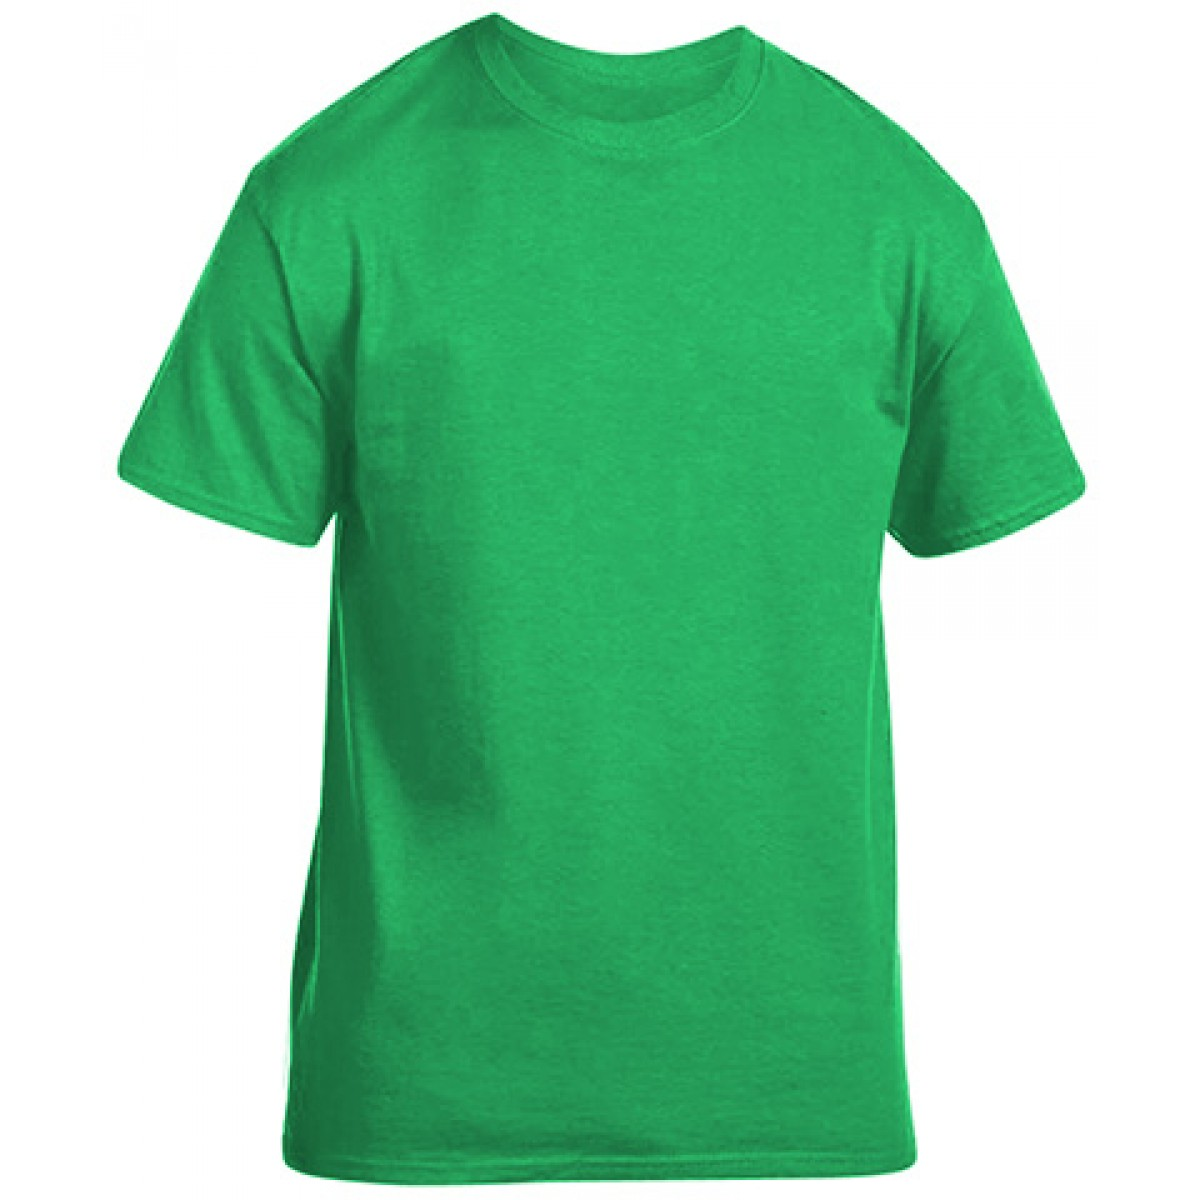 Soft 100% Cotton T-Shirt-Electric Green -3XL